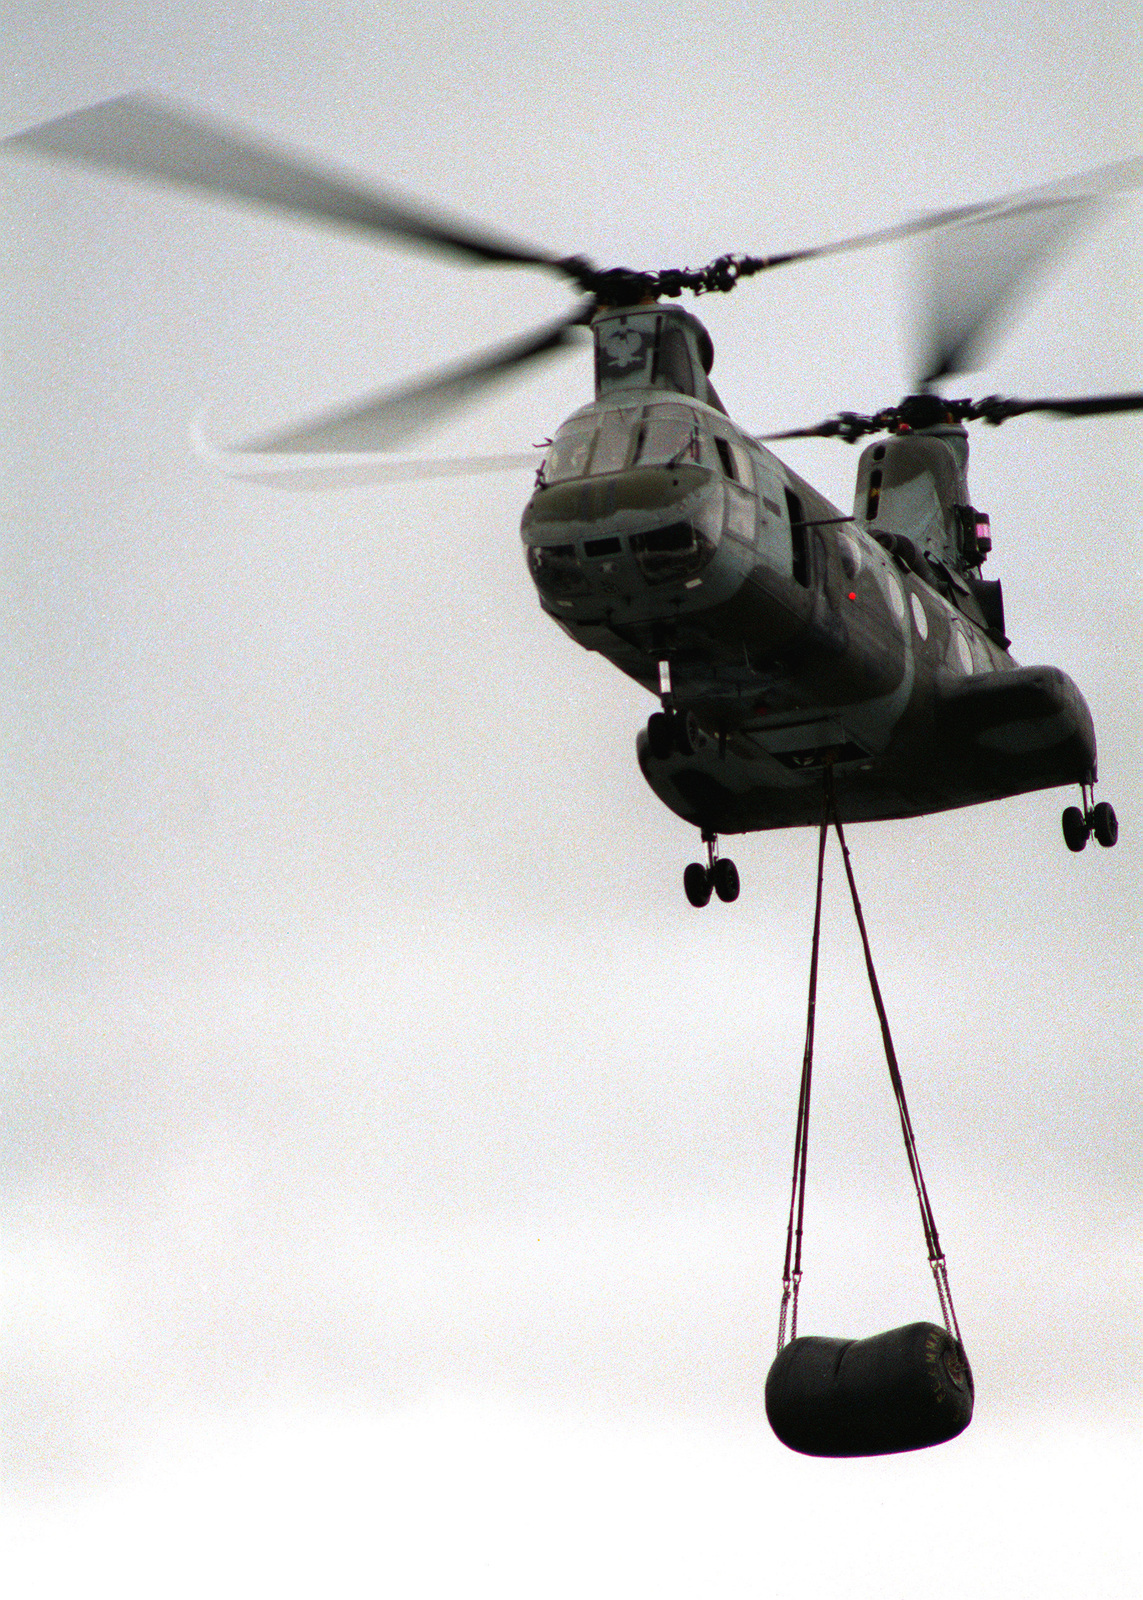 A Marine Medium Helicopter Squadron 162 (HMM-162) CH-46E Sea Knight helicopter arrives over the grounds of the U.S. Embassy carrying a fuel bladder during Operation Sharp Edge. An amphibious ready group is on station off the coast of Liberia to provide support for the embassy and evacuate civilians caught in Liberia's civil war